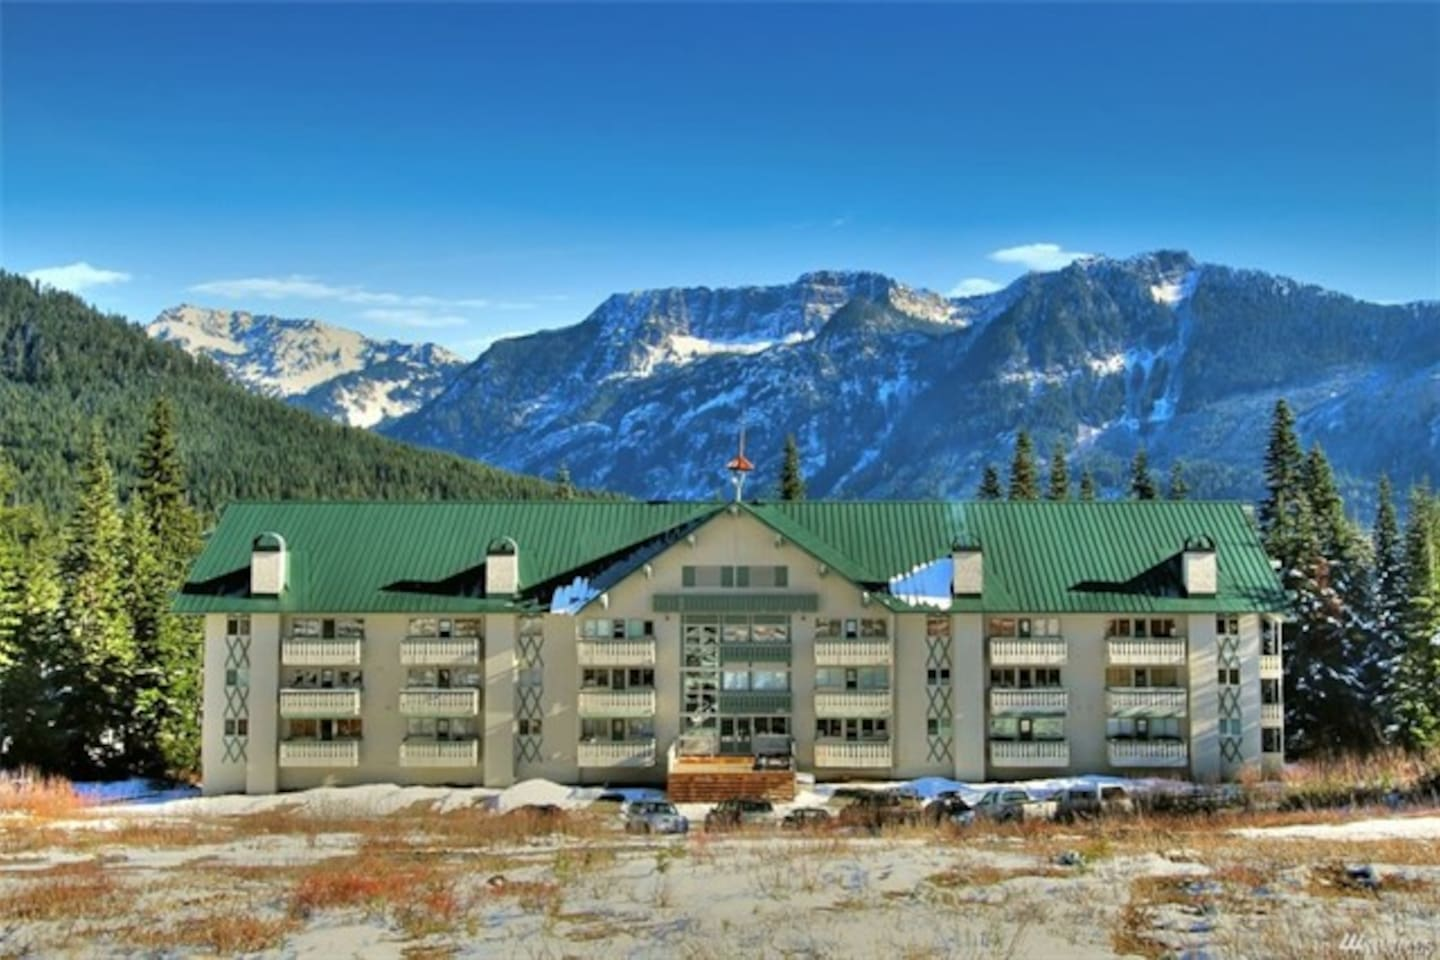 Edelweiss Chalet | 220 Tanner Way - Snoqualmie Pass, WA